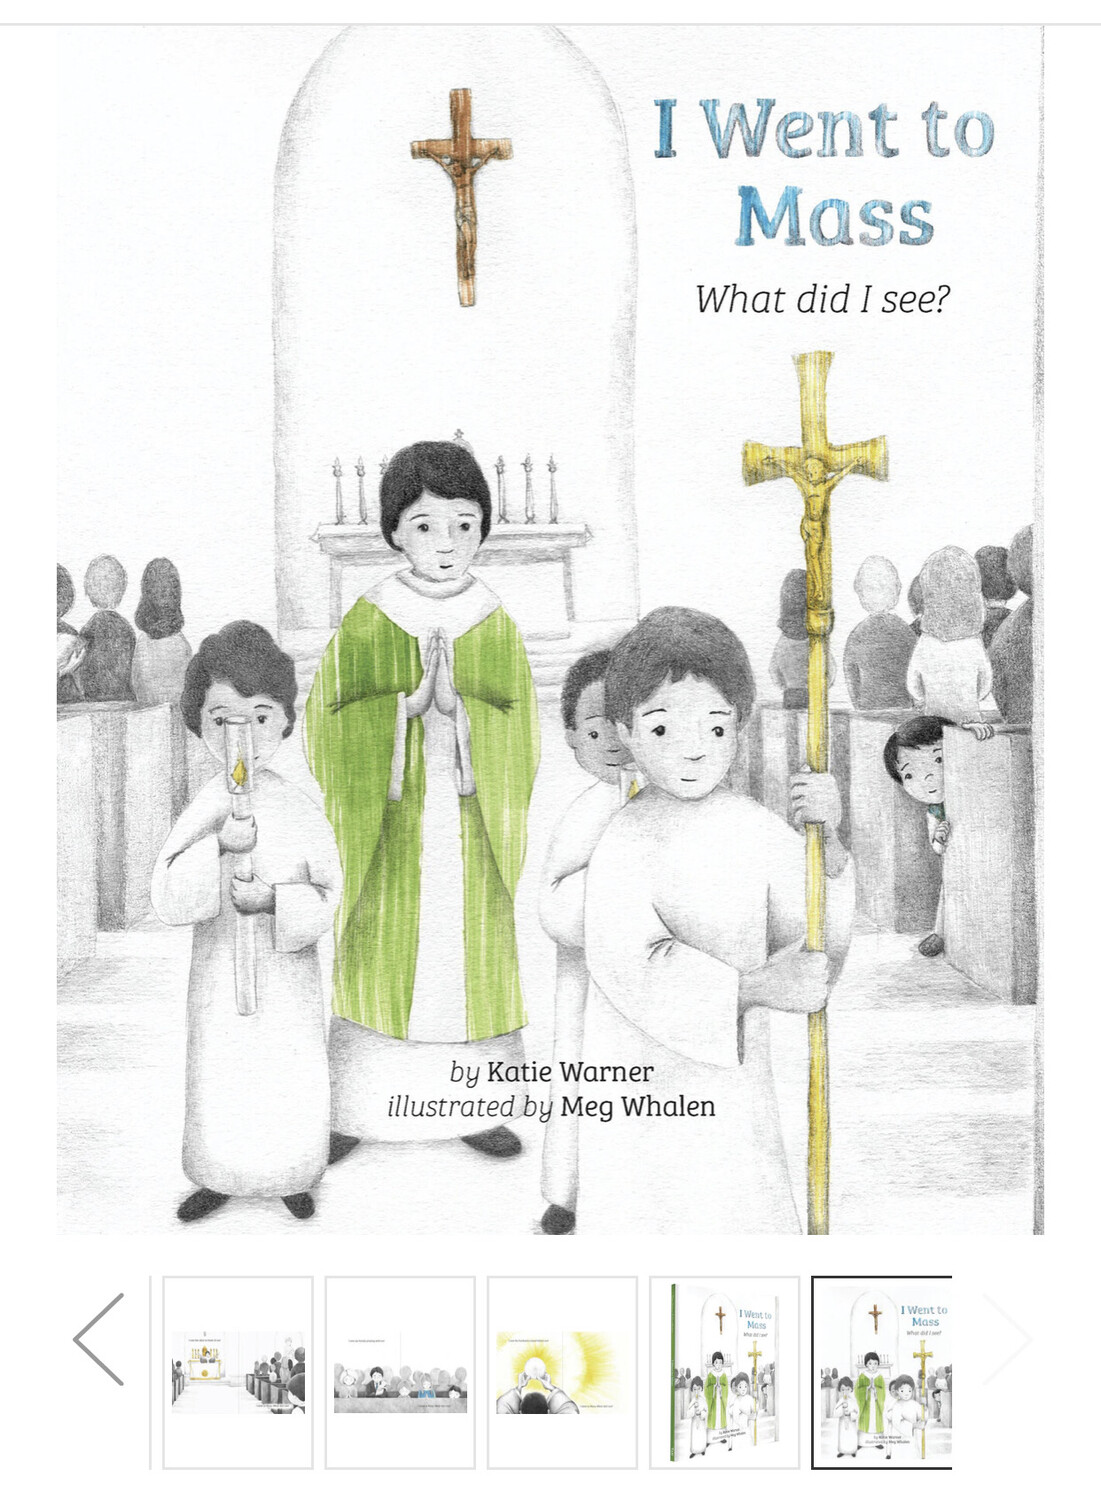 I Went to Mass: What Did I see by Katie Warner